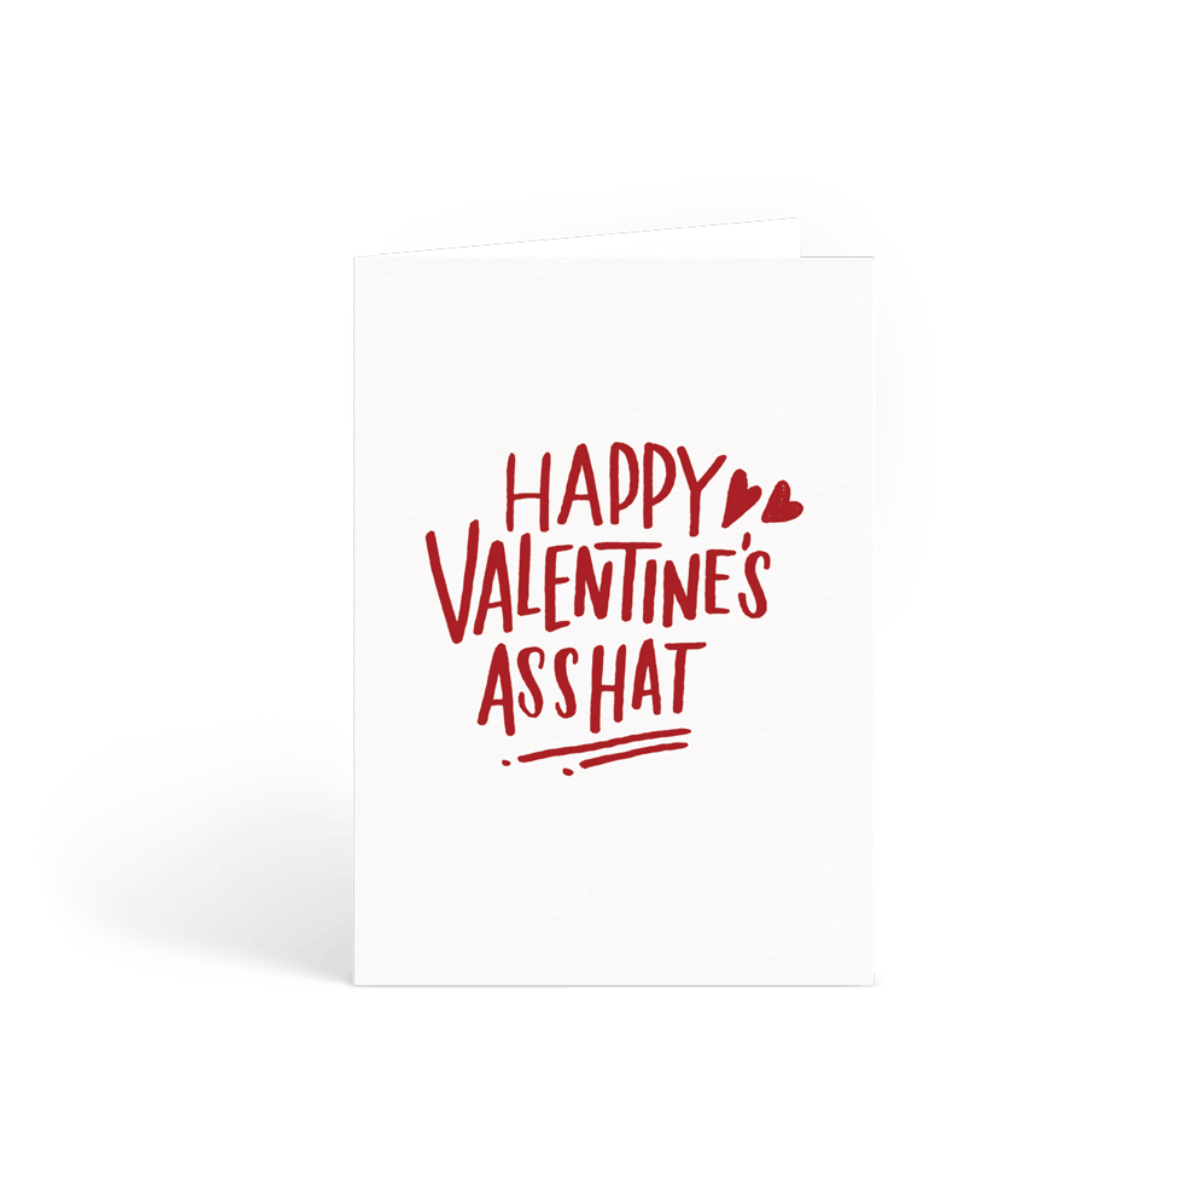 Https%3a%2f%2fwww.papier.com%2fproduct image%2f16340%2f2%2fhappy valentine s asshat 4319 front 1484659035.png?ixlib=rb 1.1